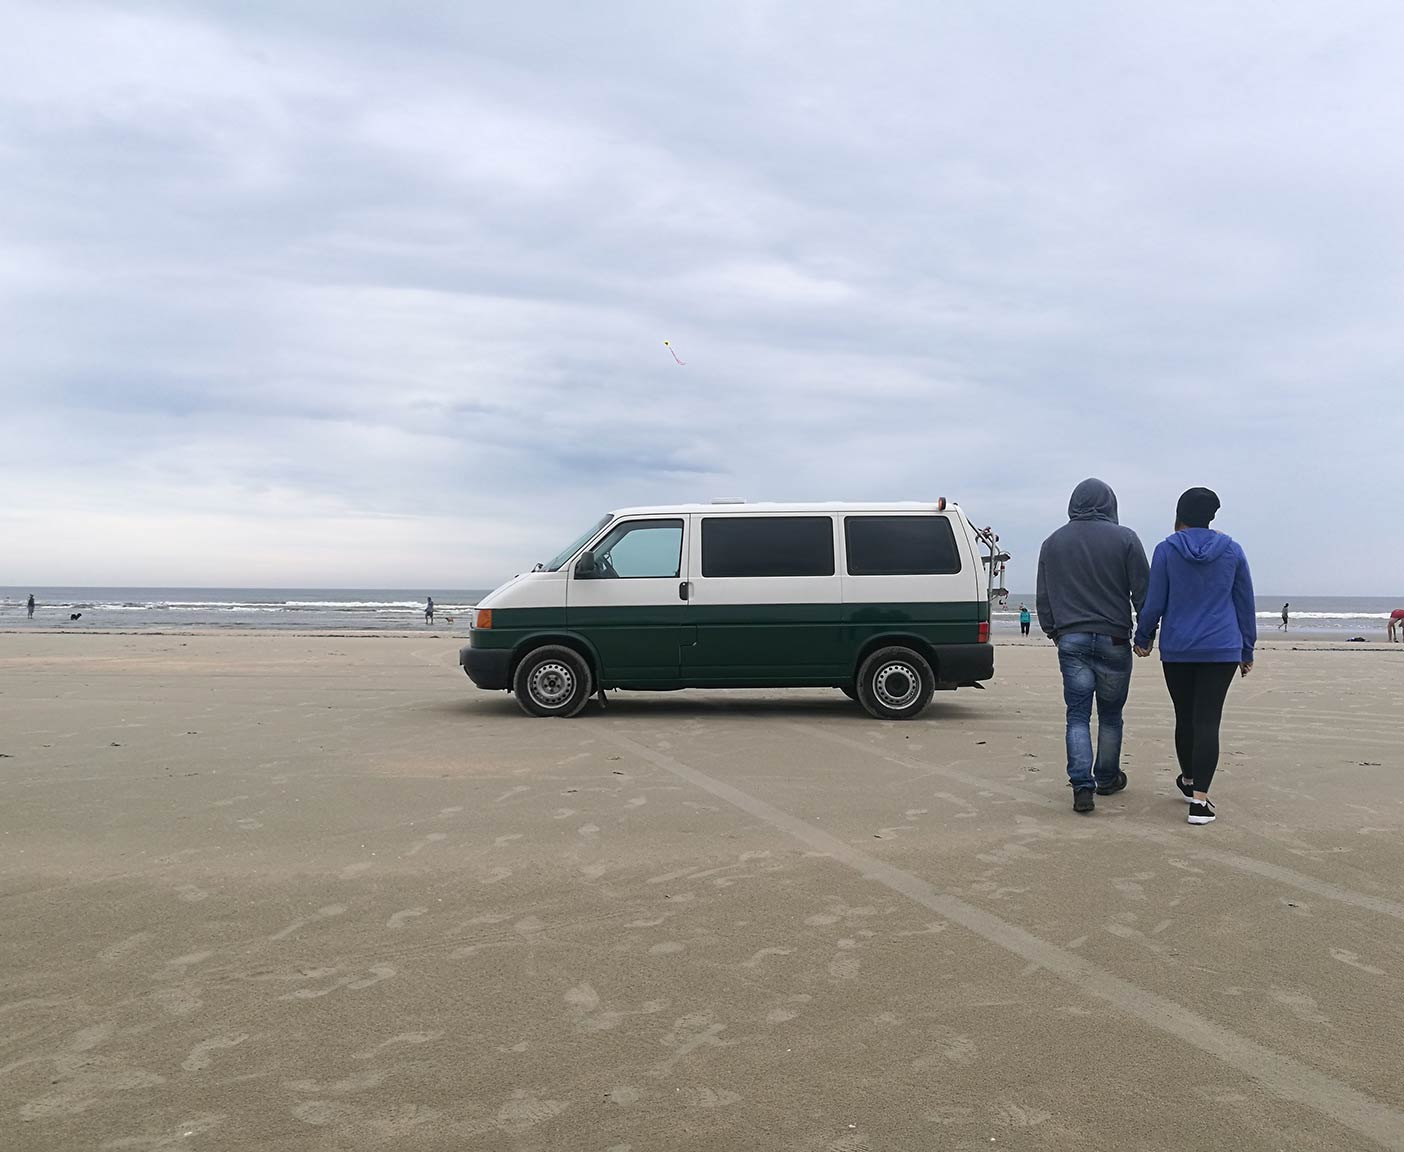 VW-T4-Camper-Syncro-caravelle-california-pritsche-multivan-maße-strand-tuning